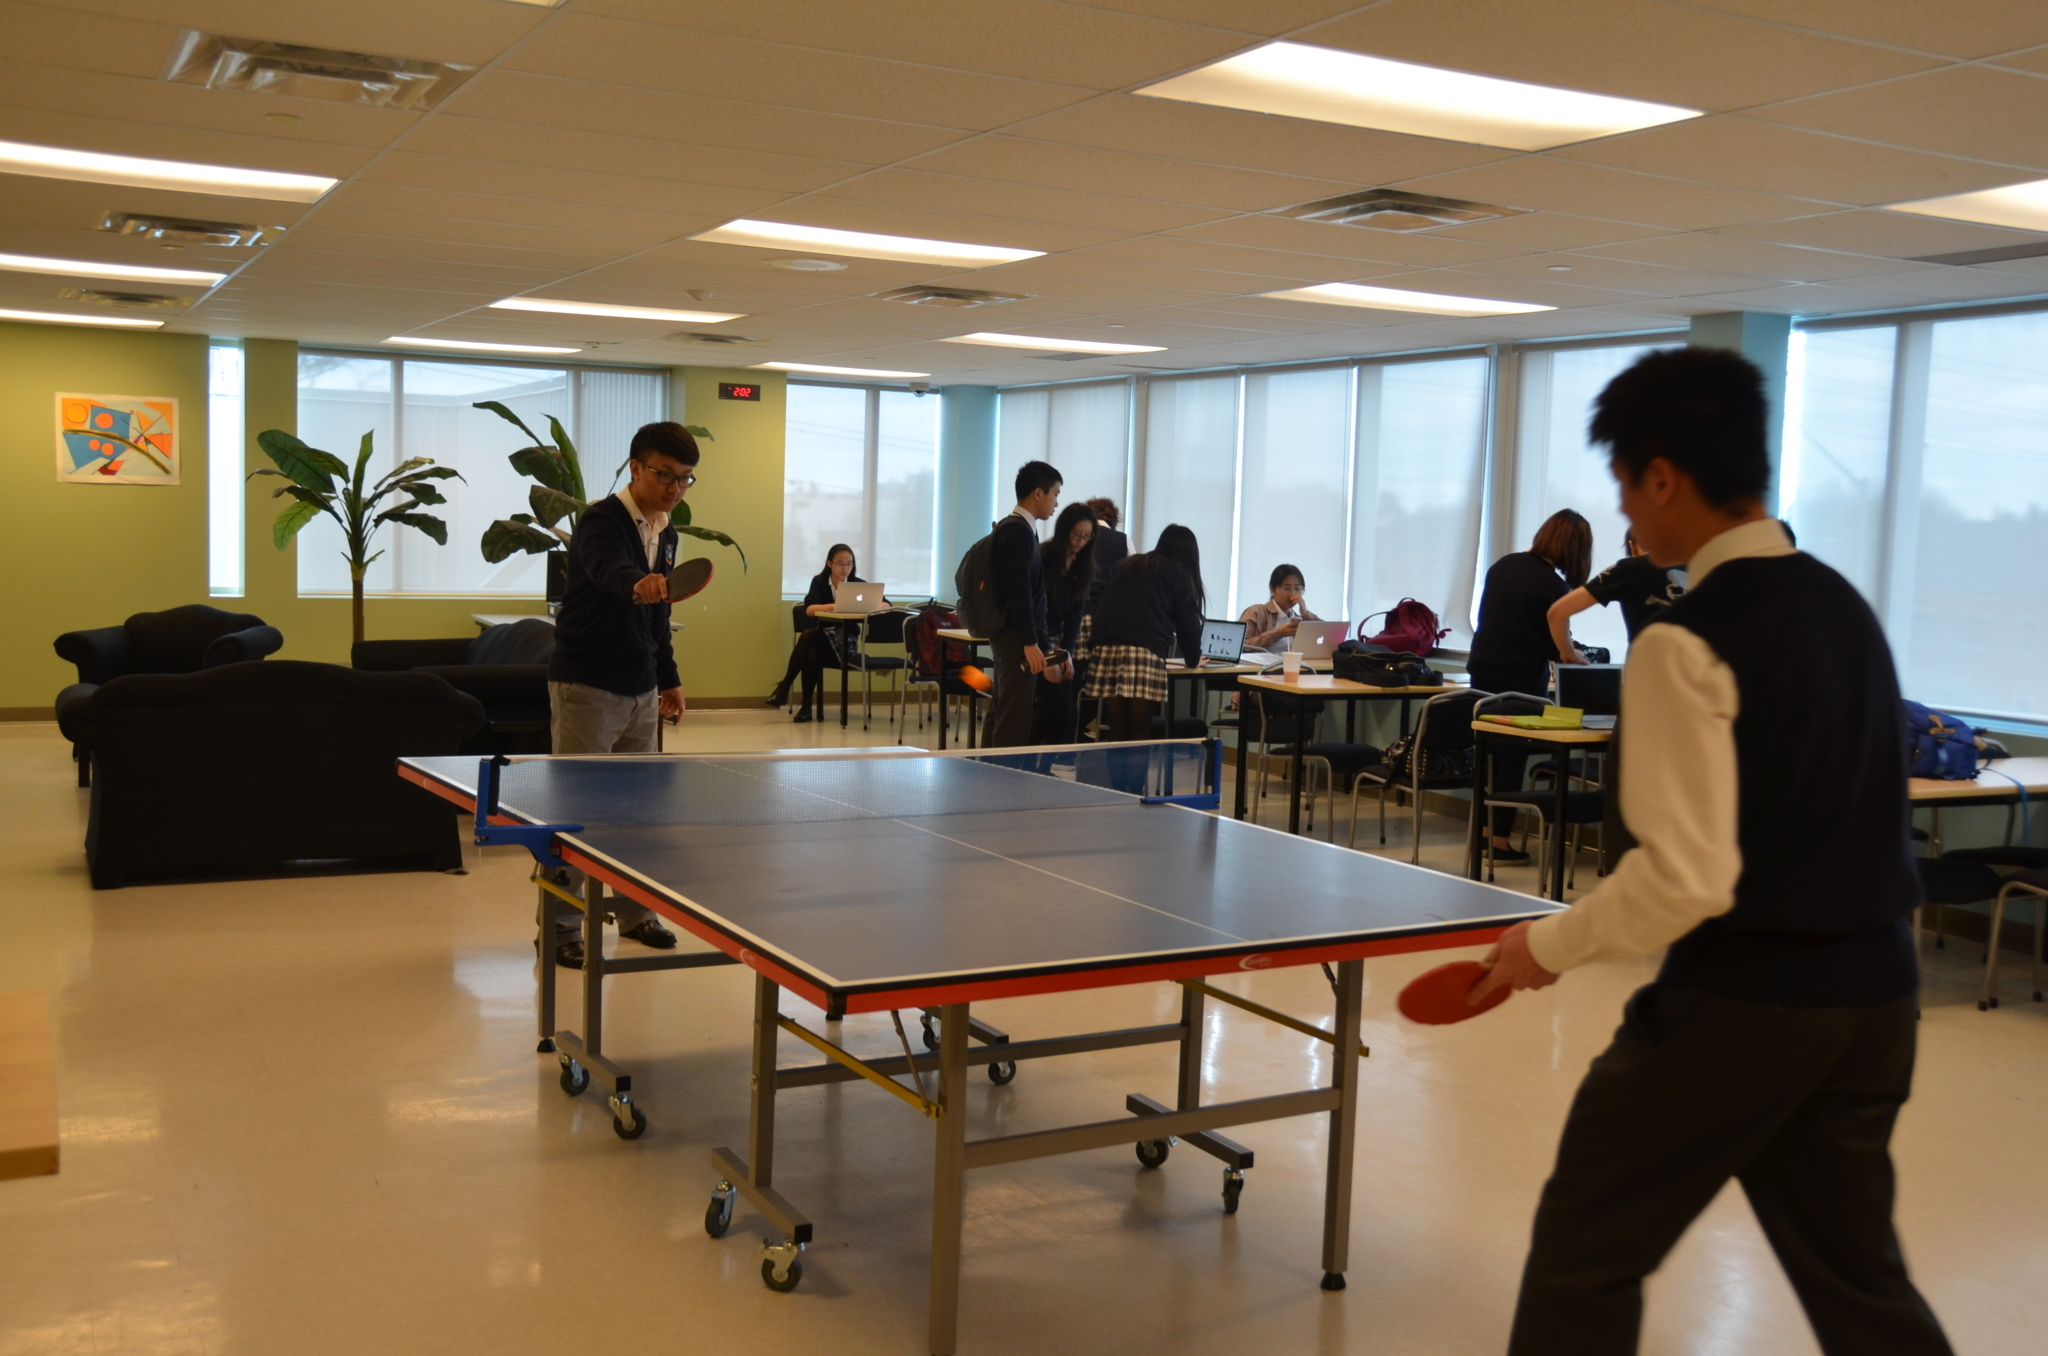 J Addison School in Markham: One of the many J. Addison Boarding facilities is the spacious common room.